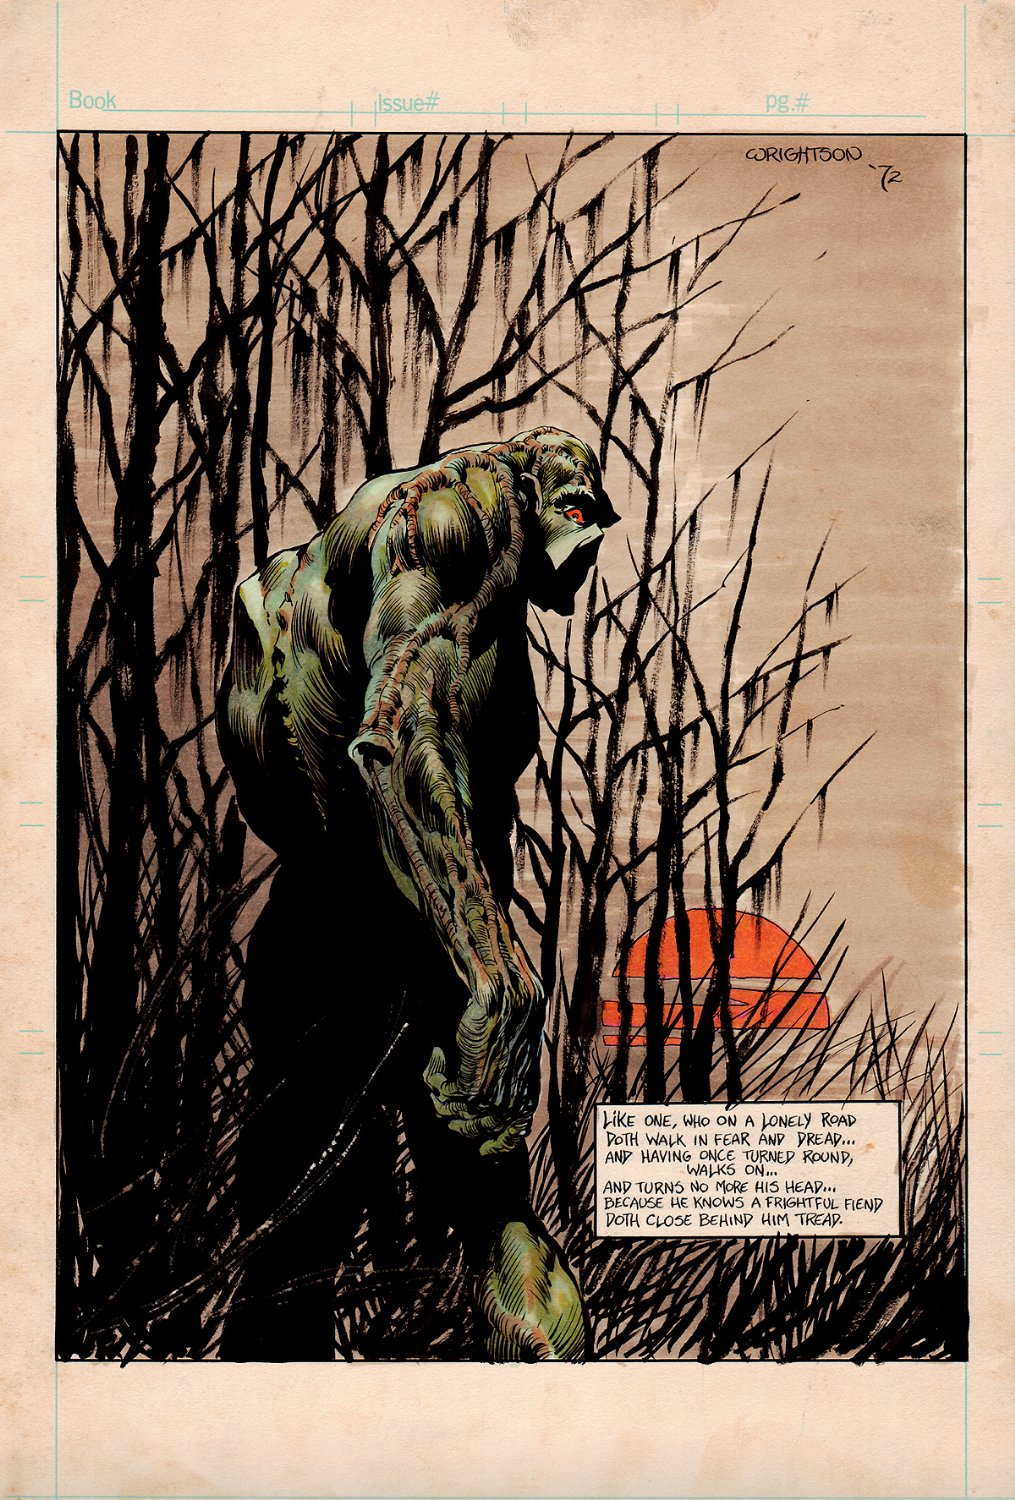 Swamp Thing (PRE-ISSUE #1 PUBLISHED DC AD ART PROMOTING SWAMPTHING #1) Drawn, Hand Colored, Hand Lettered Illustration All By Wrightson! 1972